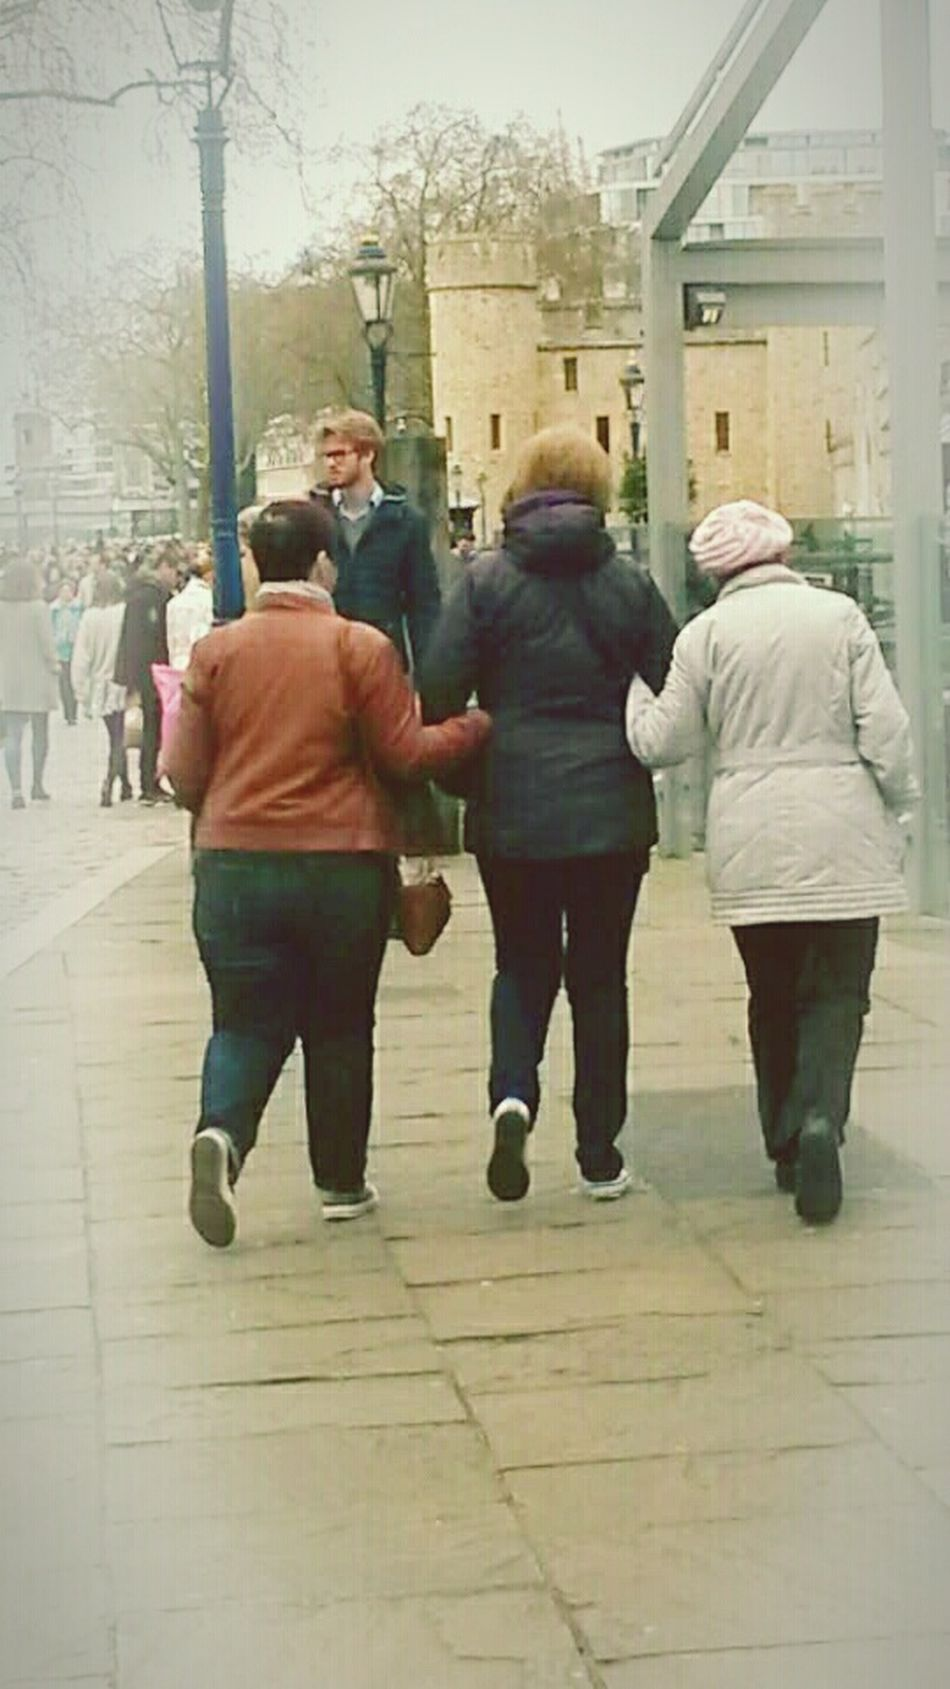 I am the watcher Family Togetherness Unity Women Women Around The World Time Together Full Length City City Life Rear View Walking Friendship People Motion Outdoors Warm Clothing Adults Only Sightseing Seeing The Sights